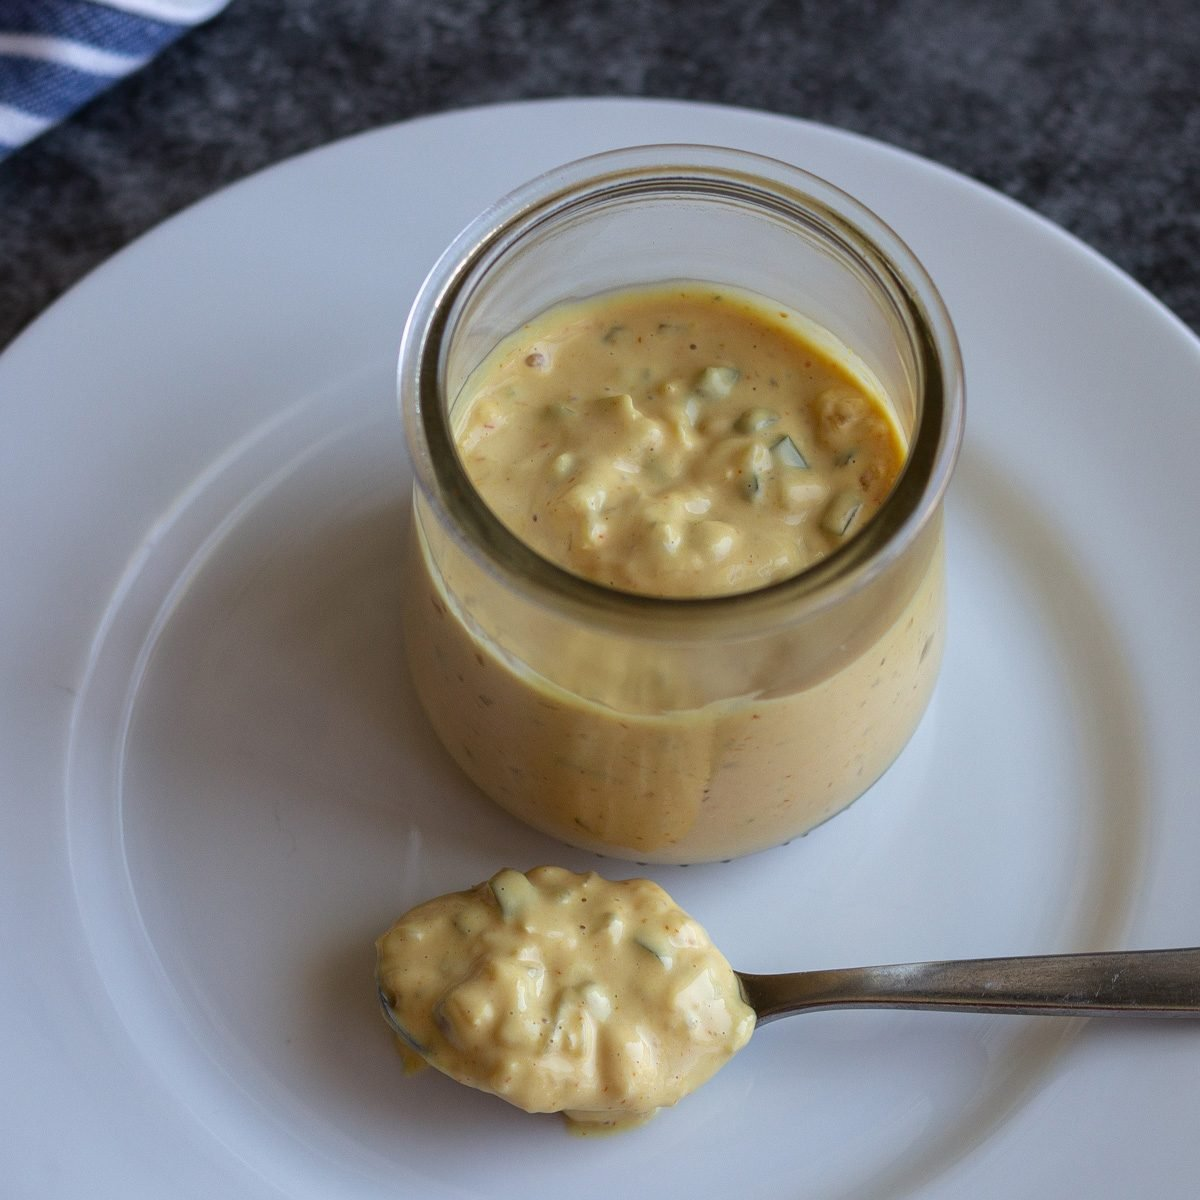 Glass jar with Big Mac Sauce on a white plate with a spoonful of sauce as well.